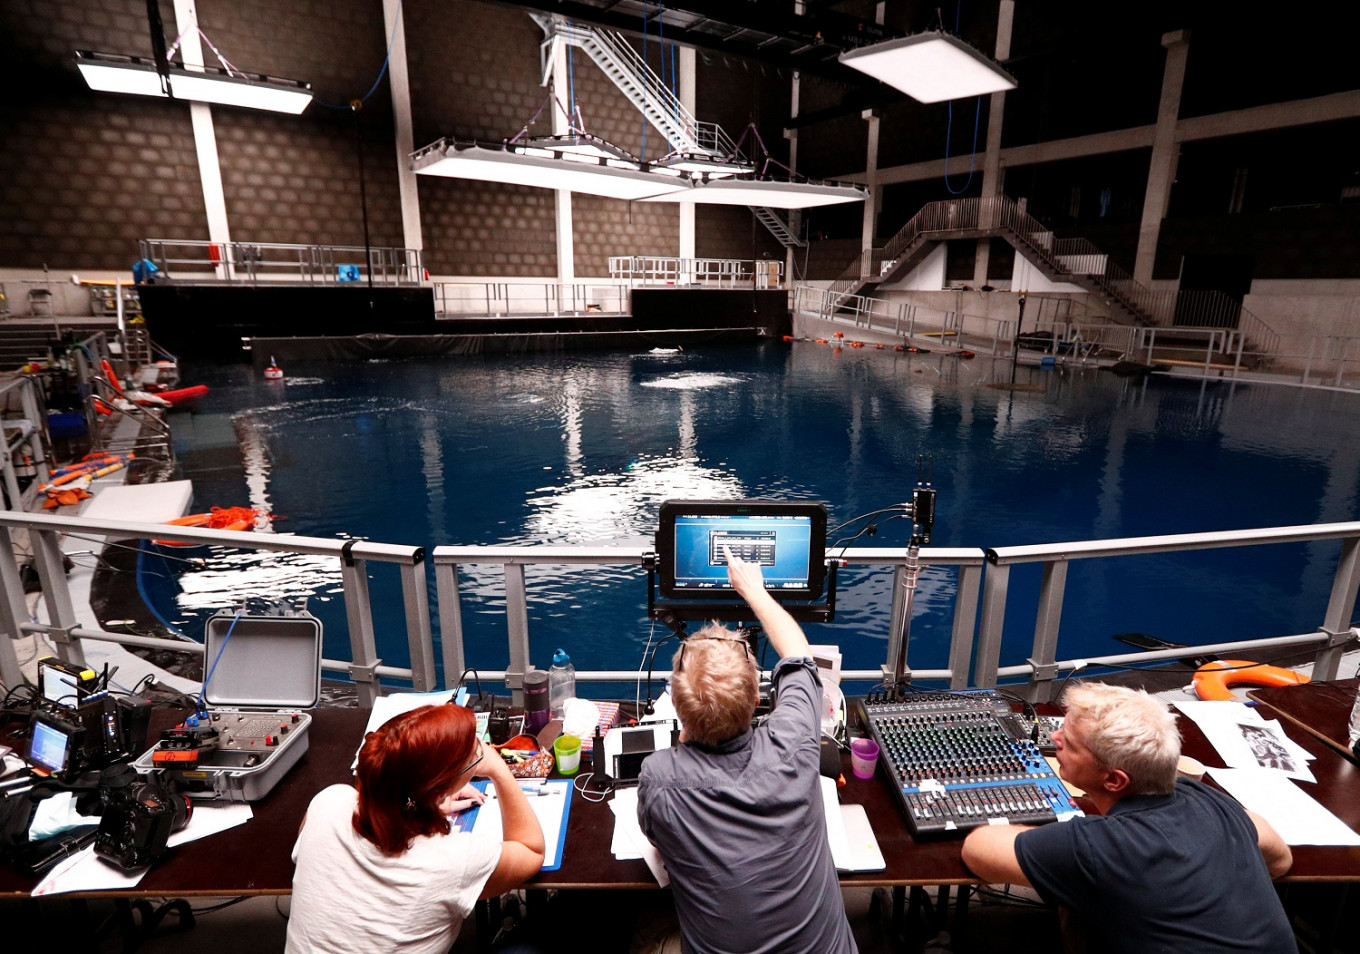 Filming 30 feet down: Underwater movie studio opens in Belgium